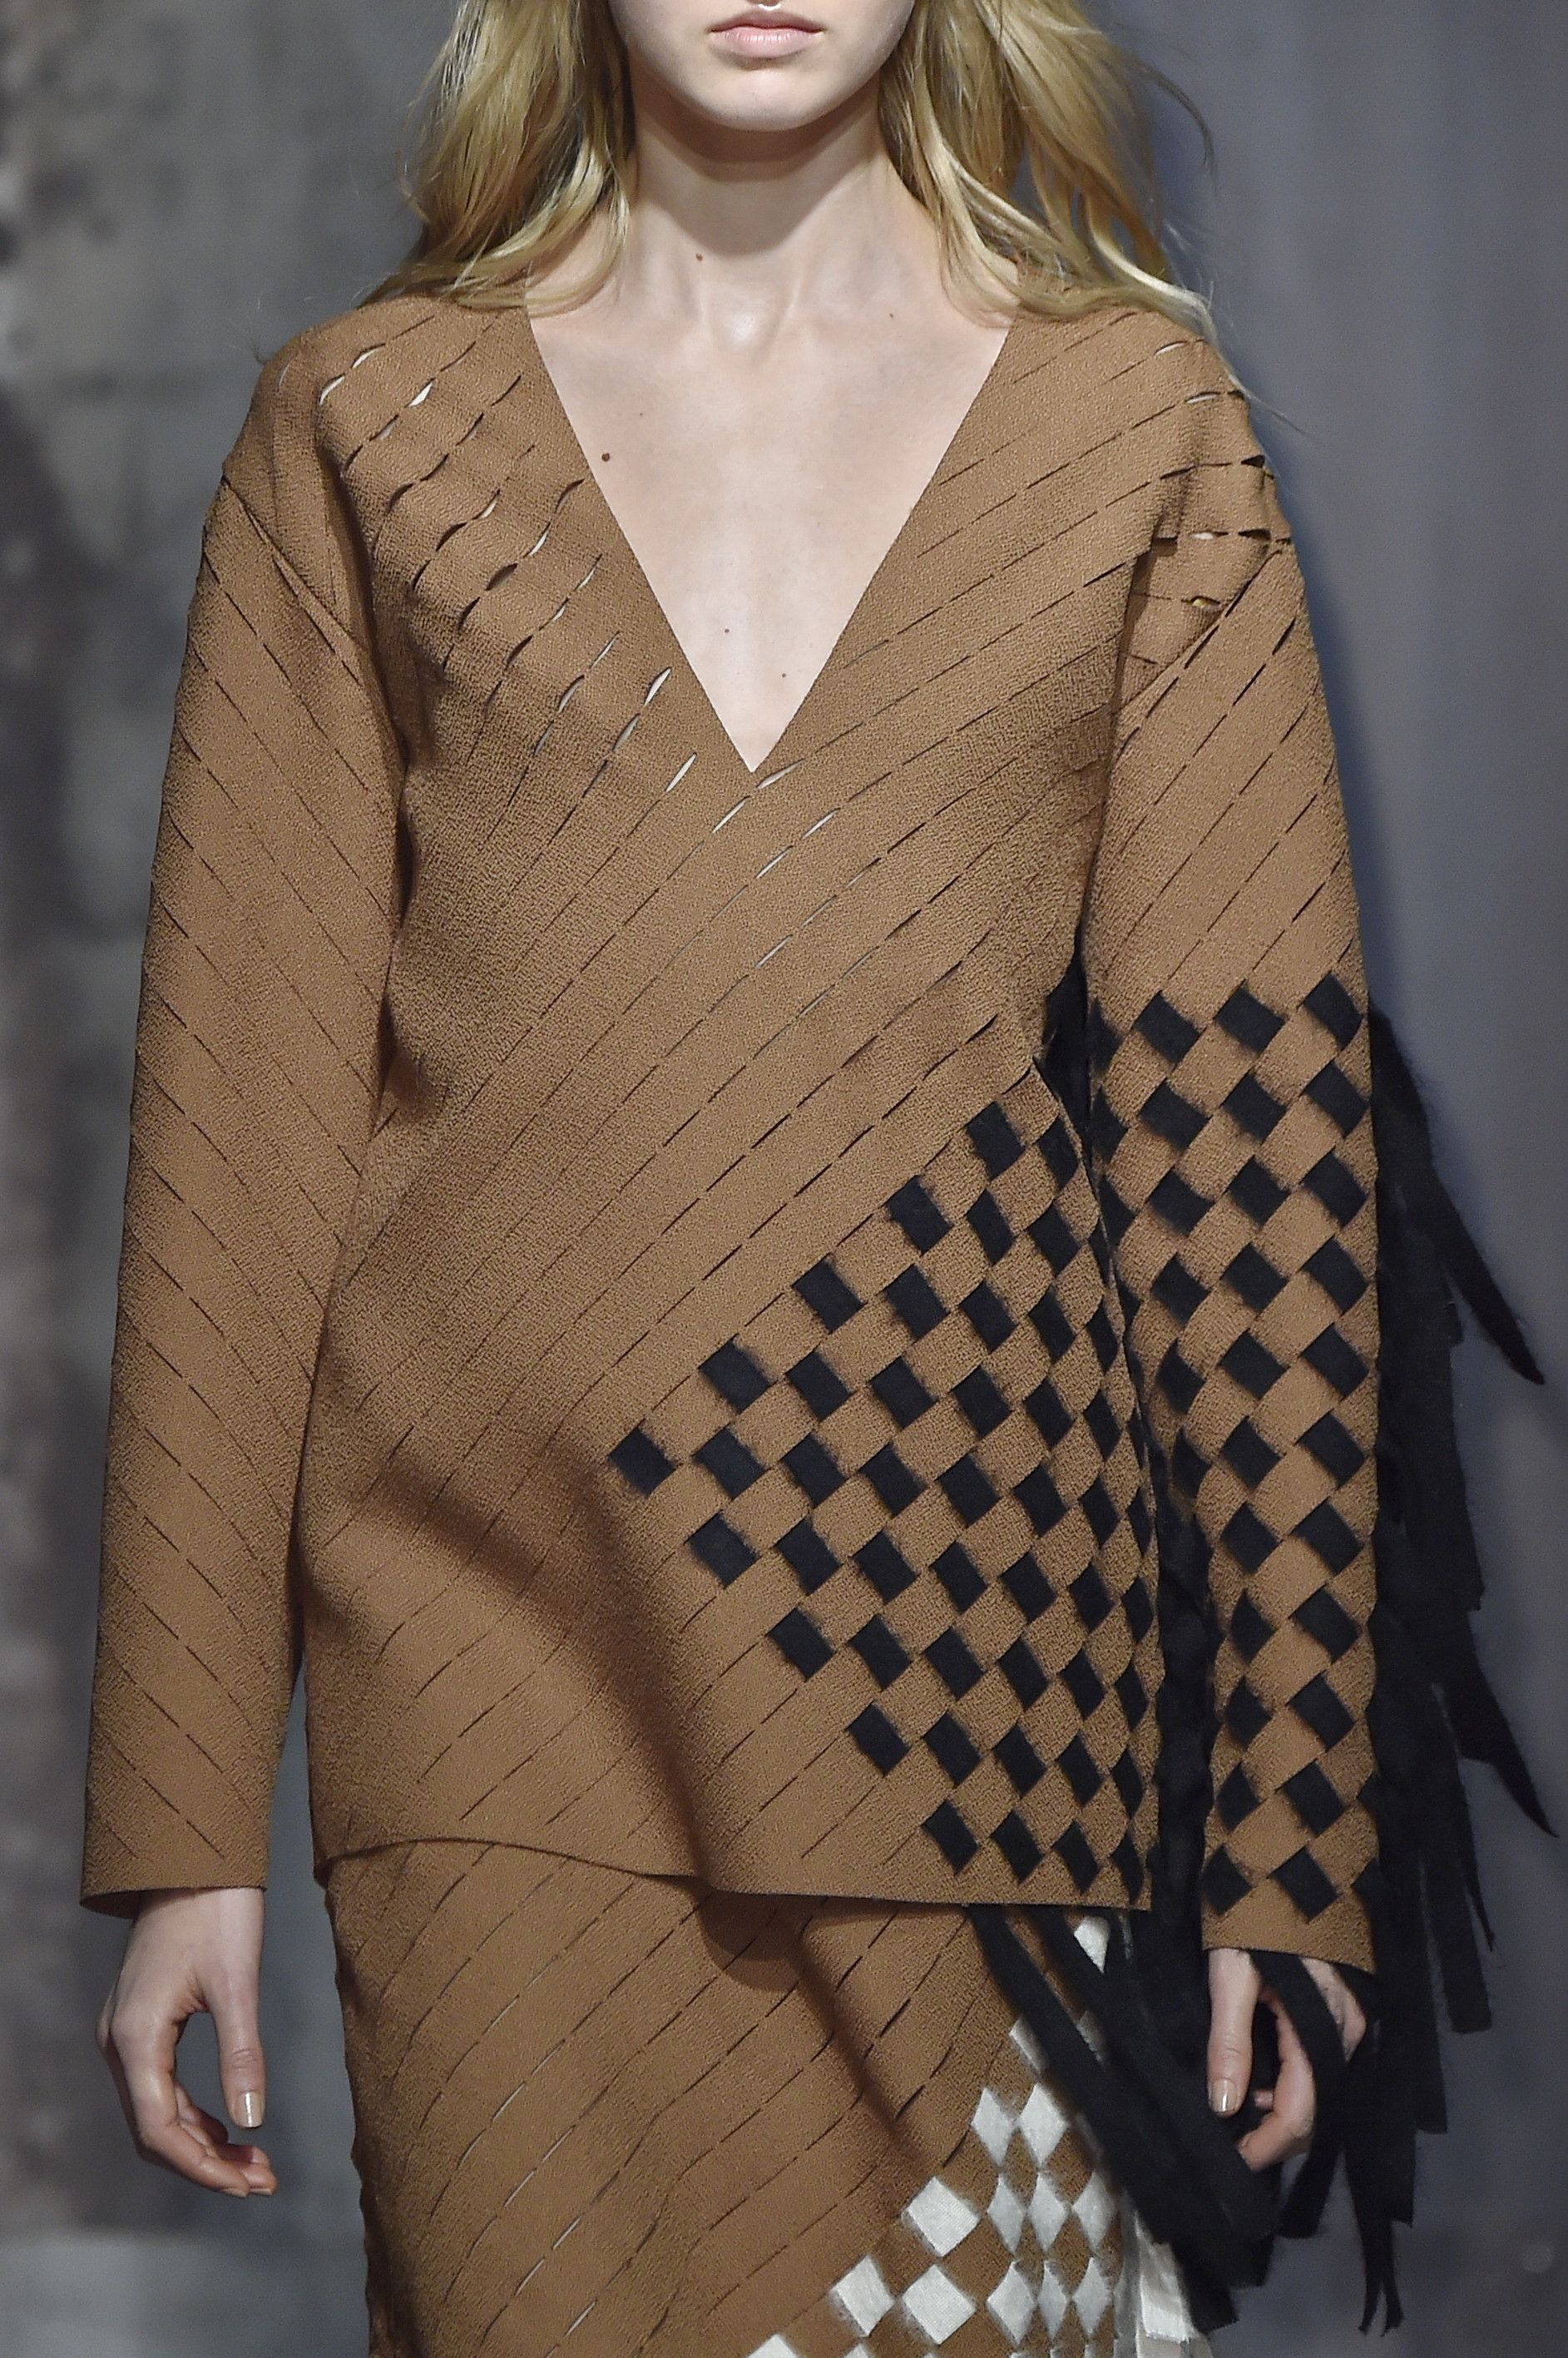 Intricate braiding details lend a modern sporty vibe at @marcodevincenzo #AW15 #MFW